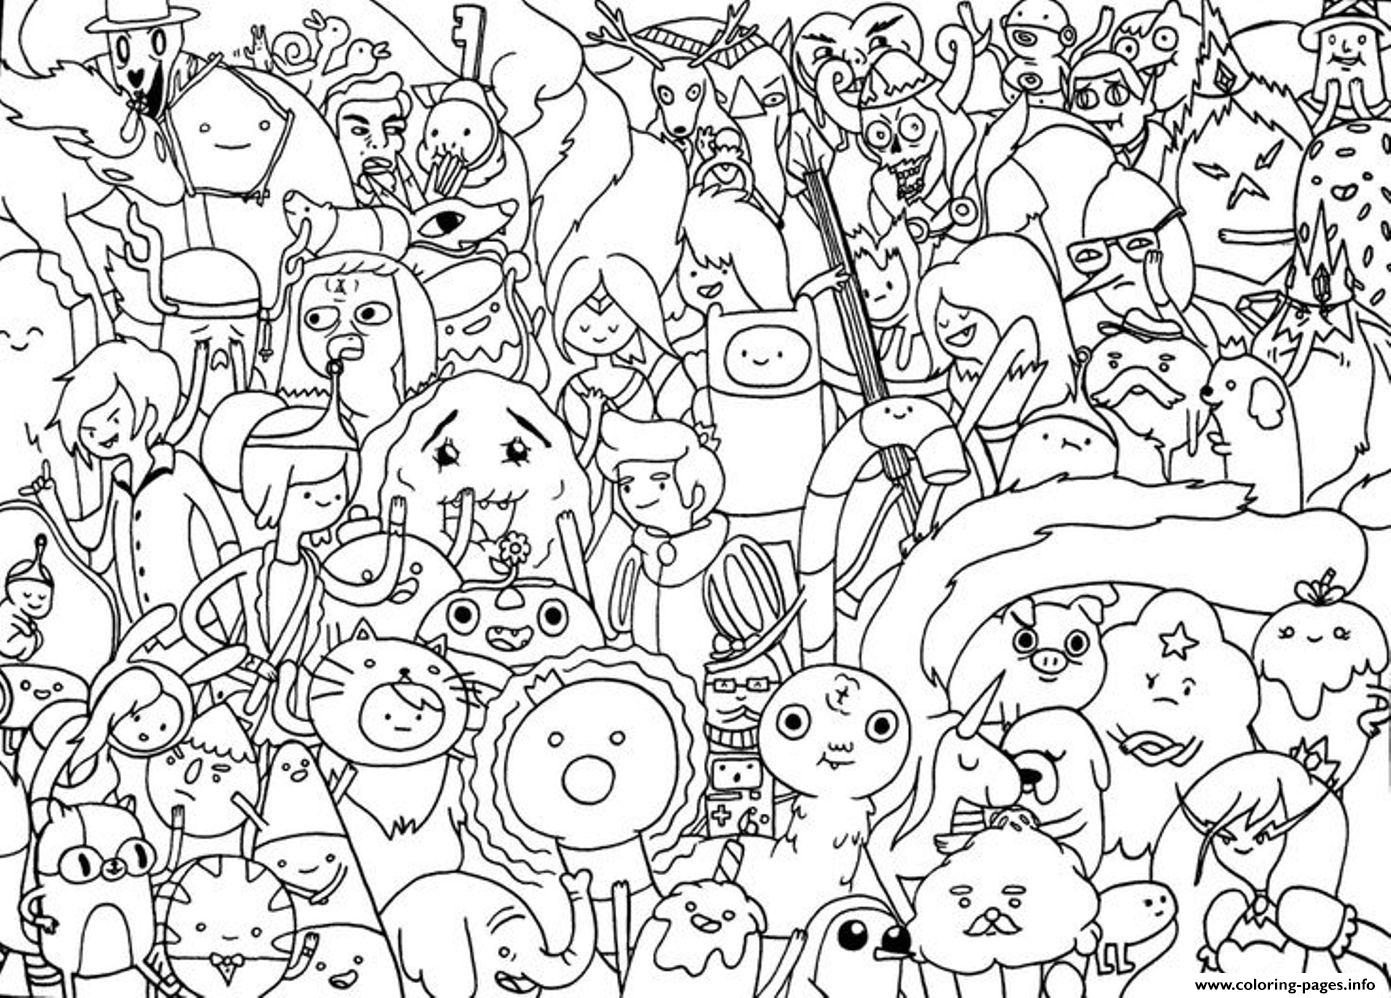 Free Cartoon Adventure Time Se41d Coloring Pages Printable